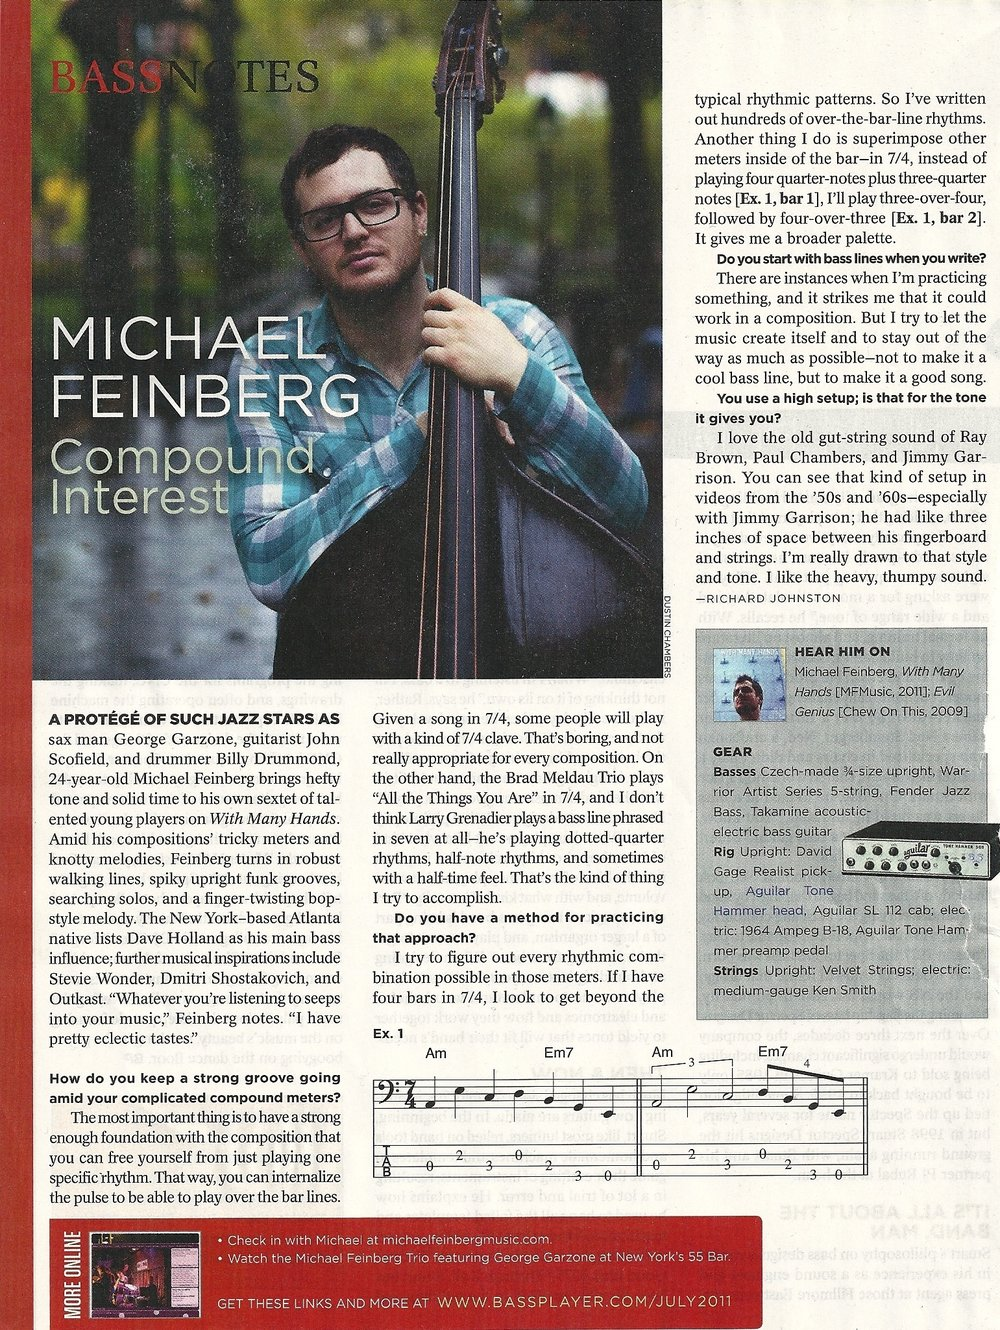 July 2011, Bass Player Magazine feature